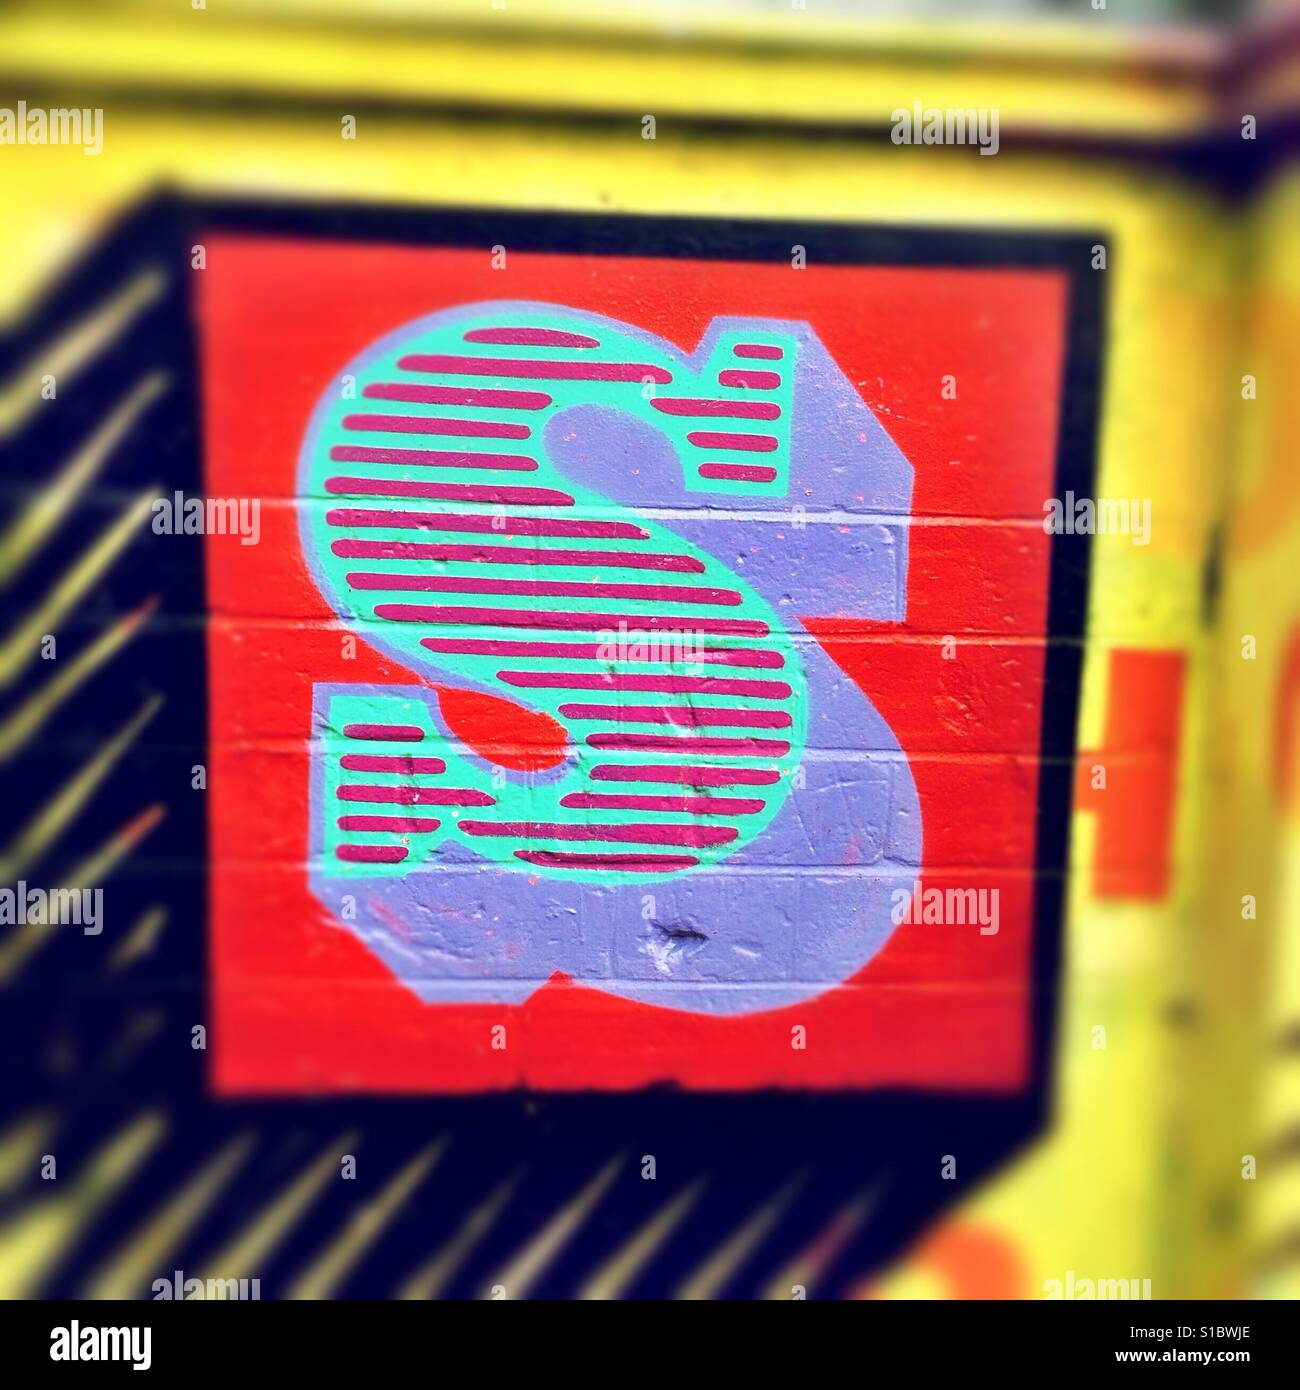 Detail from graffiti art by street artist Ben Eine, showing a colourful, stylised letter S. - Stock Image